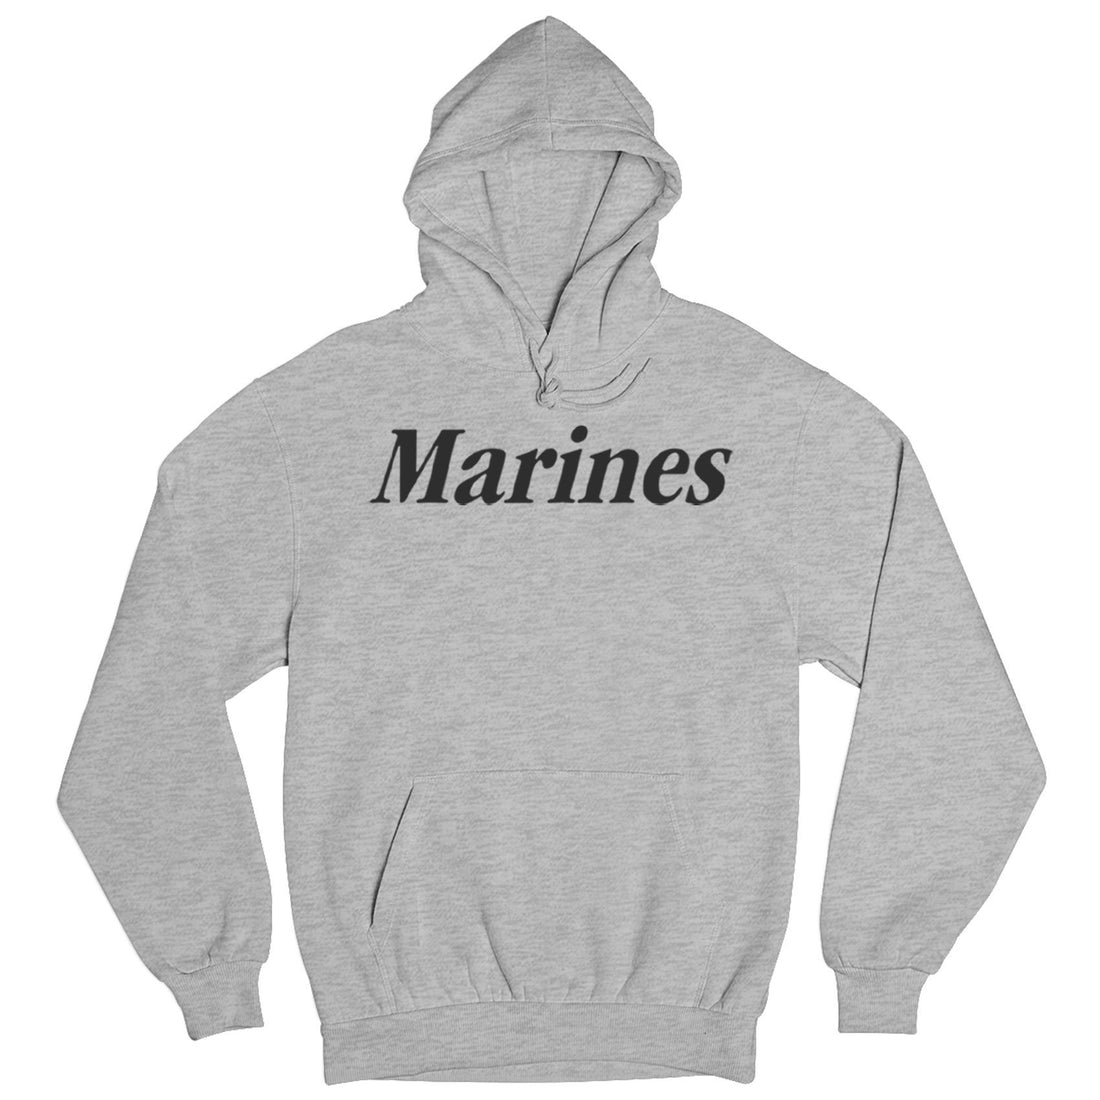 Limited Edition Marines Hoodie (CPT's SPECIAL Extra $8 Discount) - Marine Corps Direct